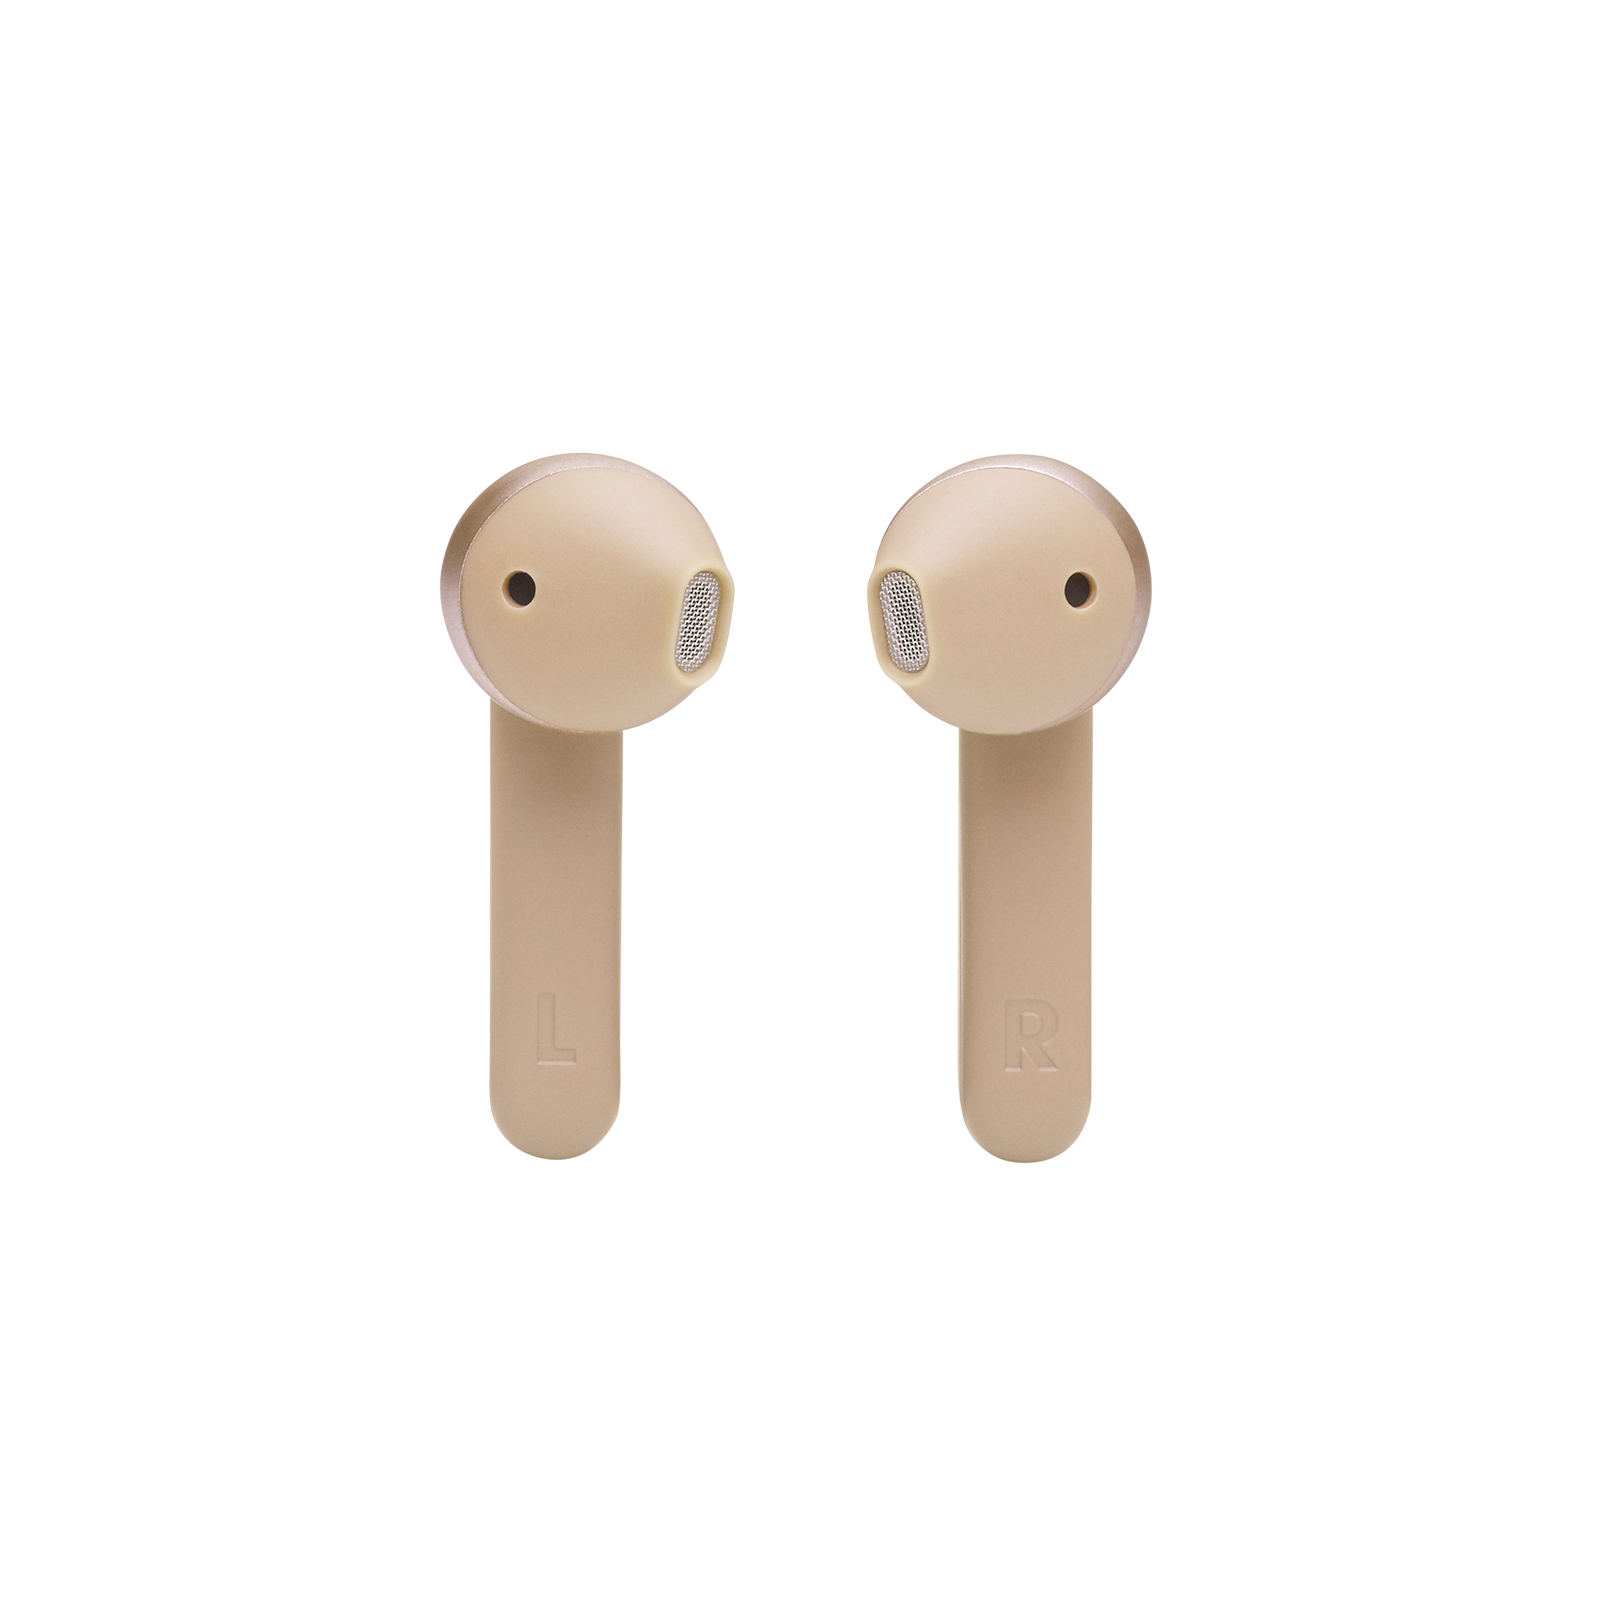 JBL Tune 225TWS - Gold - True wireless earbud headphones - Detailshot 1